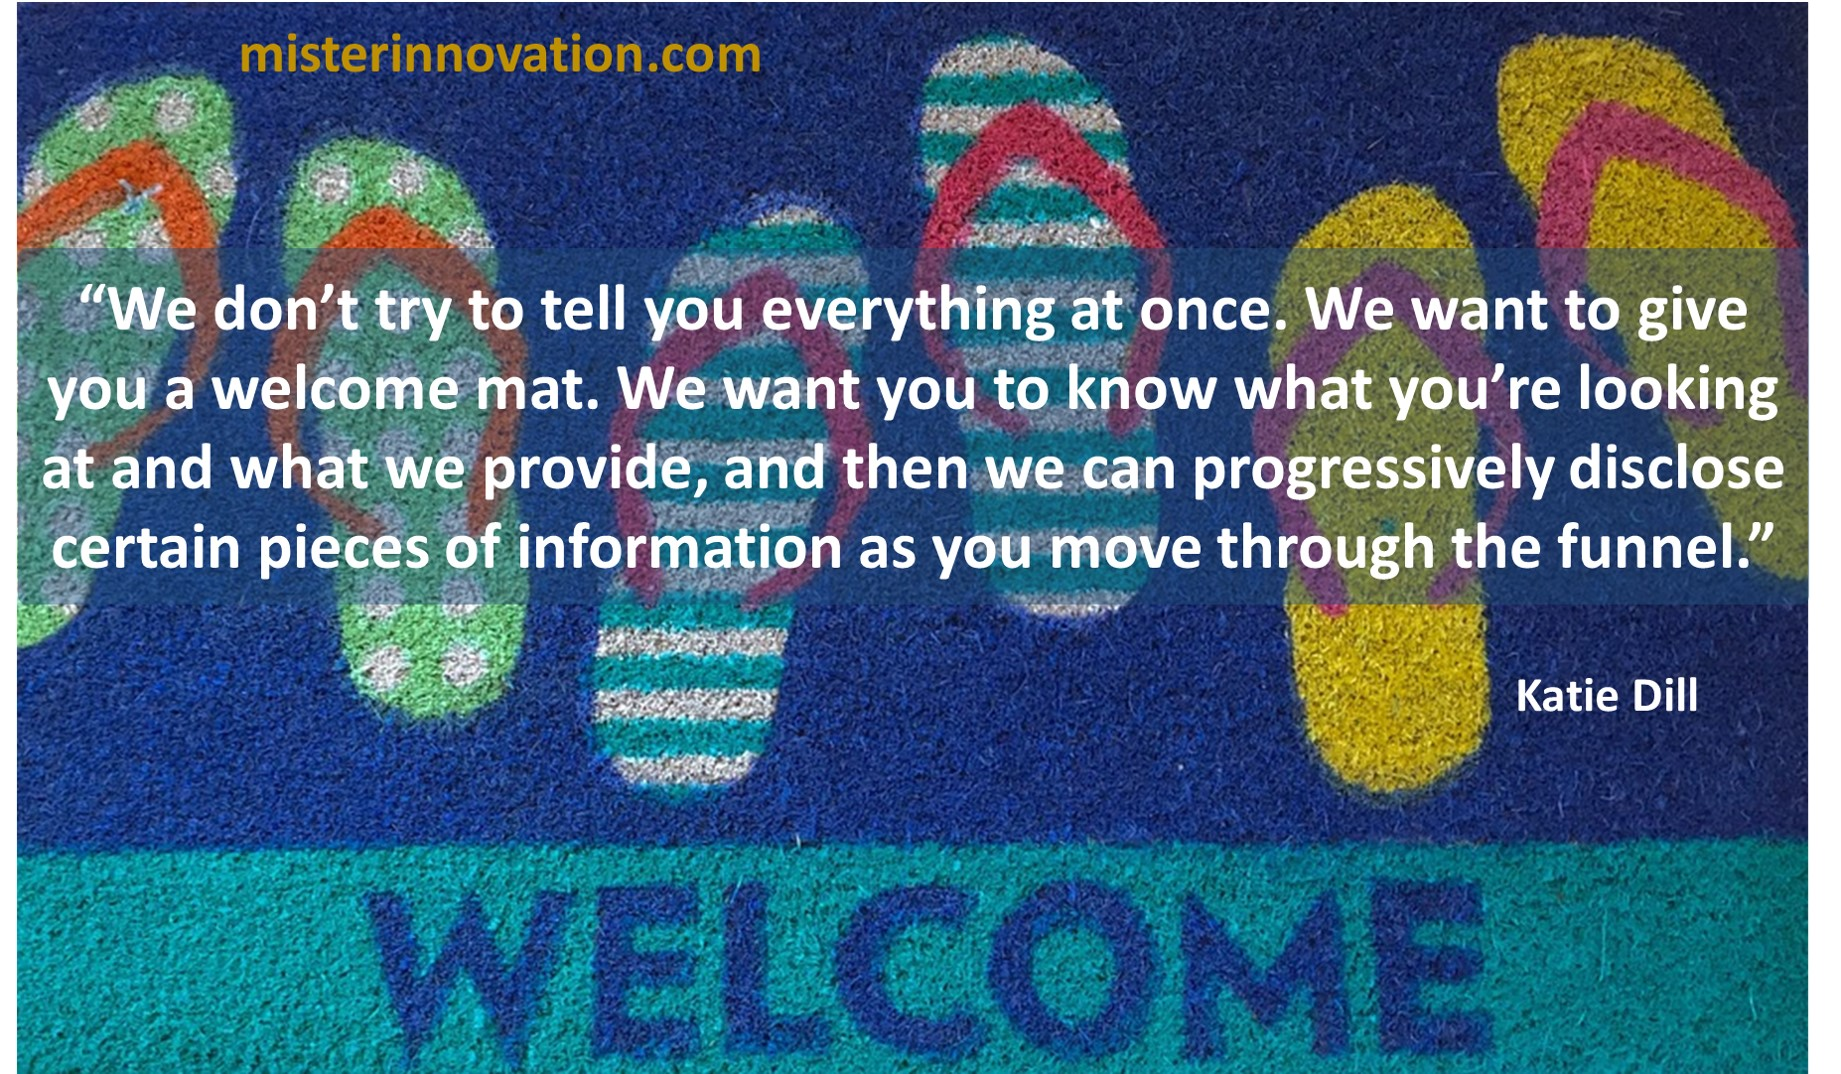 Katie Dill Quote on Design and Progressive Information Reveal